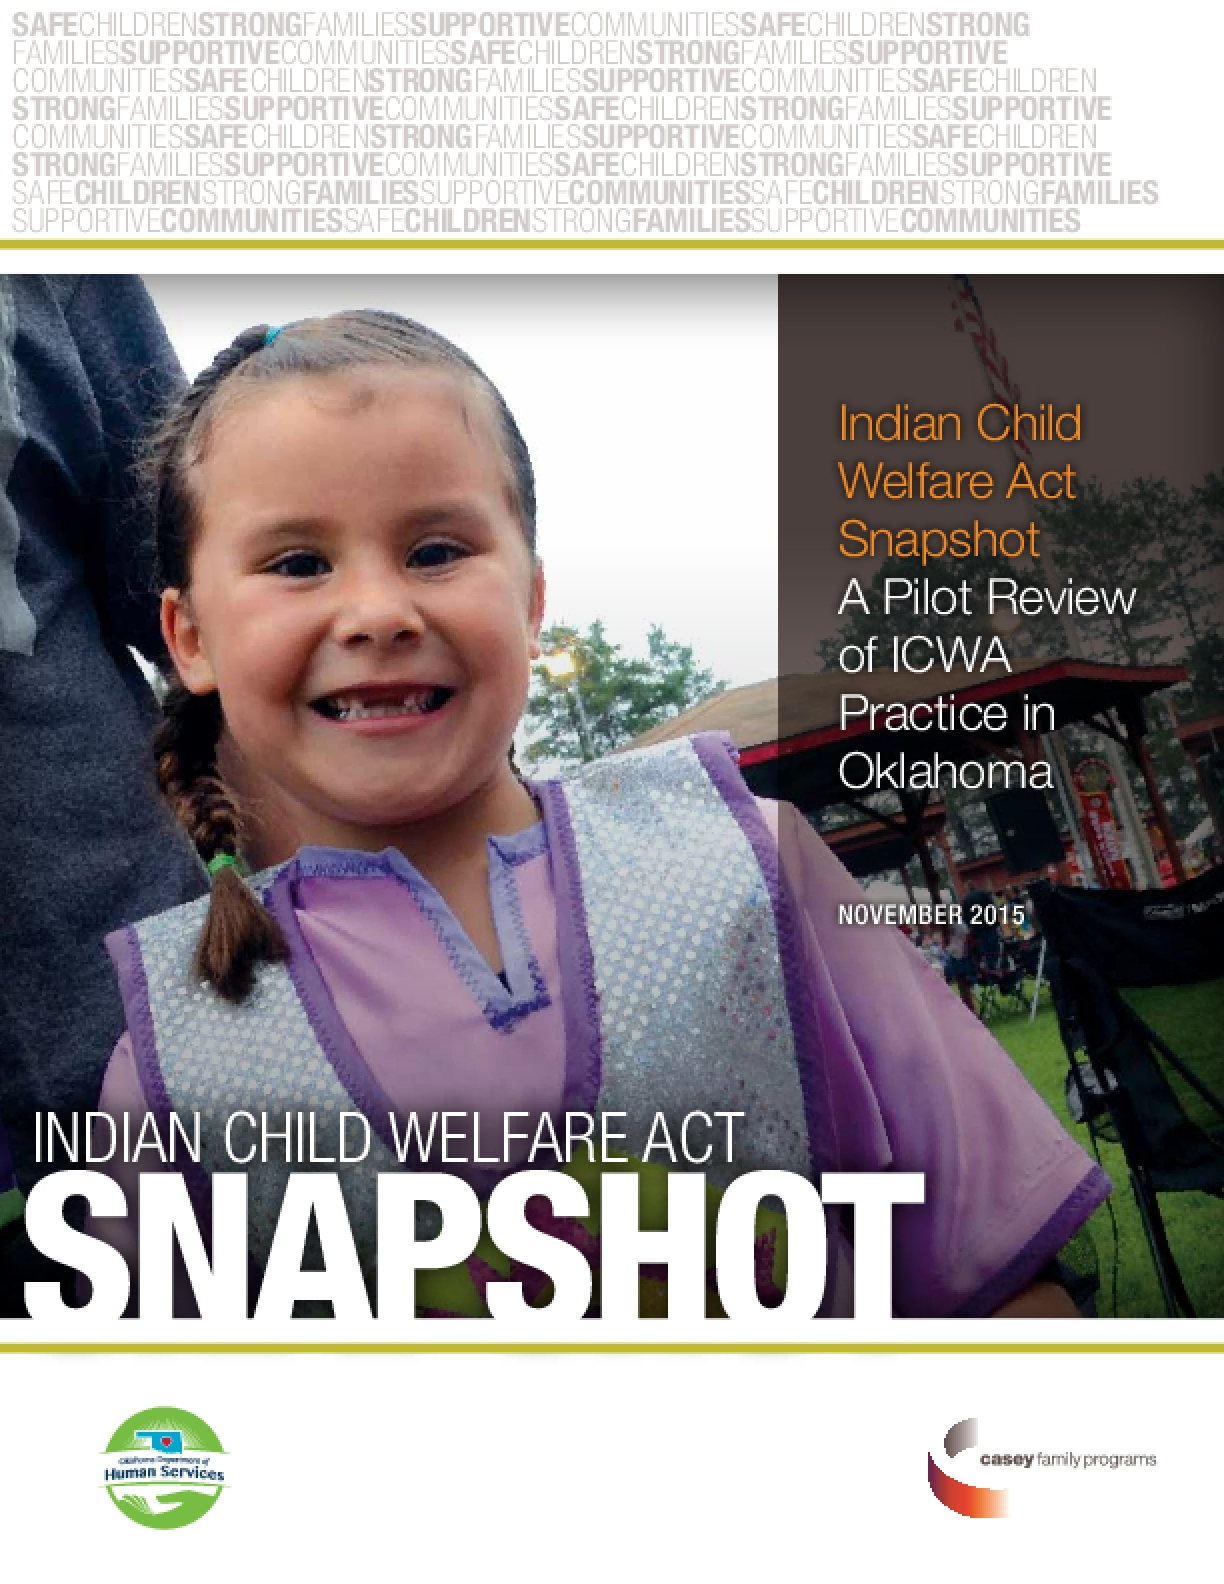 Indian Child Welfare Act Snapshot: A Pilot Review of ICWA Practice in Oklahoma